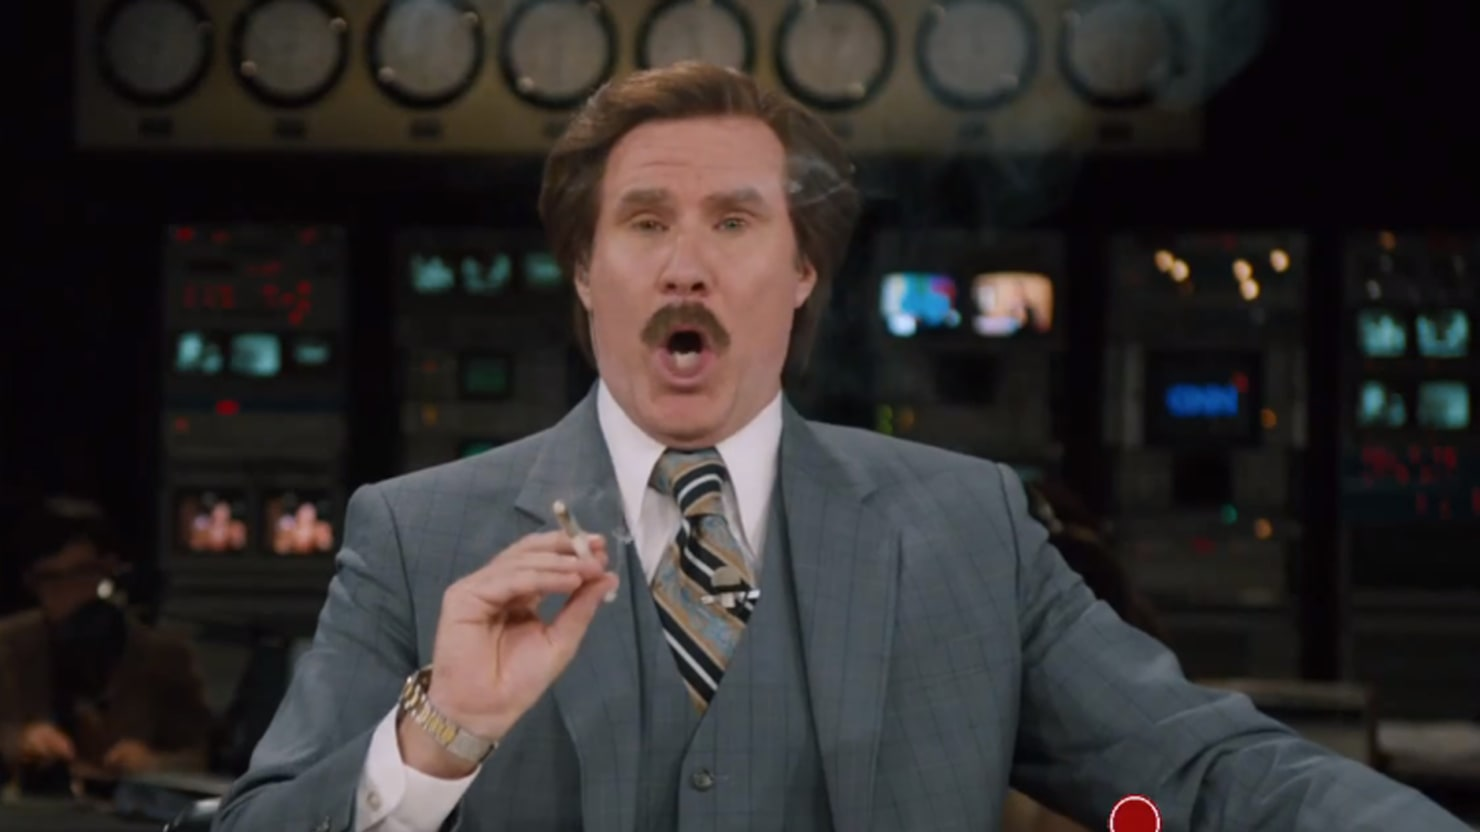 'Anchorman 2' Trailer: Ranking the 10 Best Quotes (VIDEO)